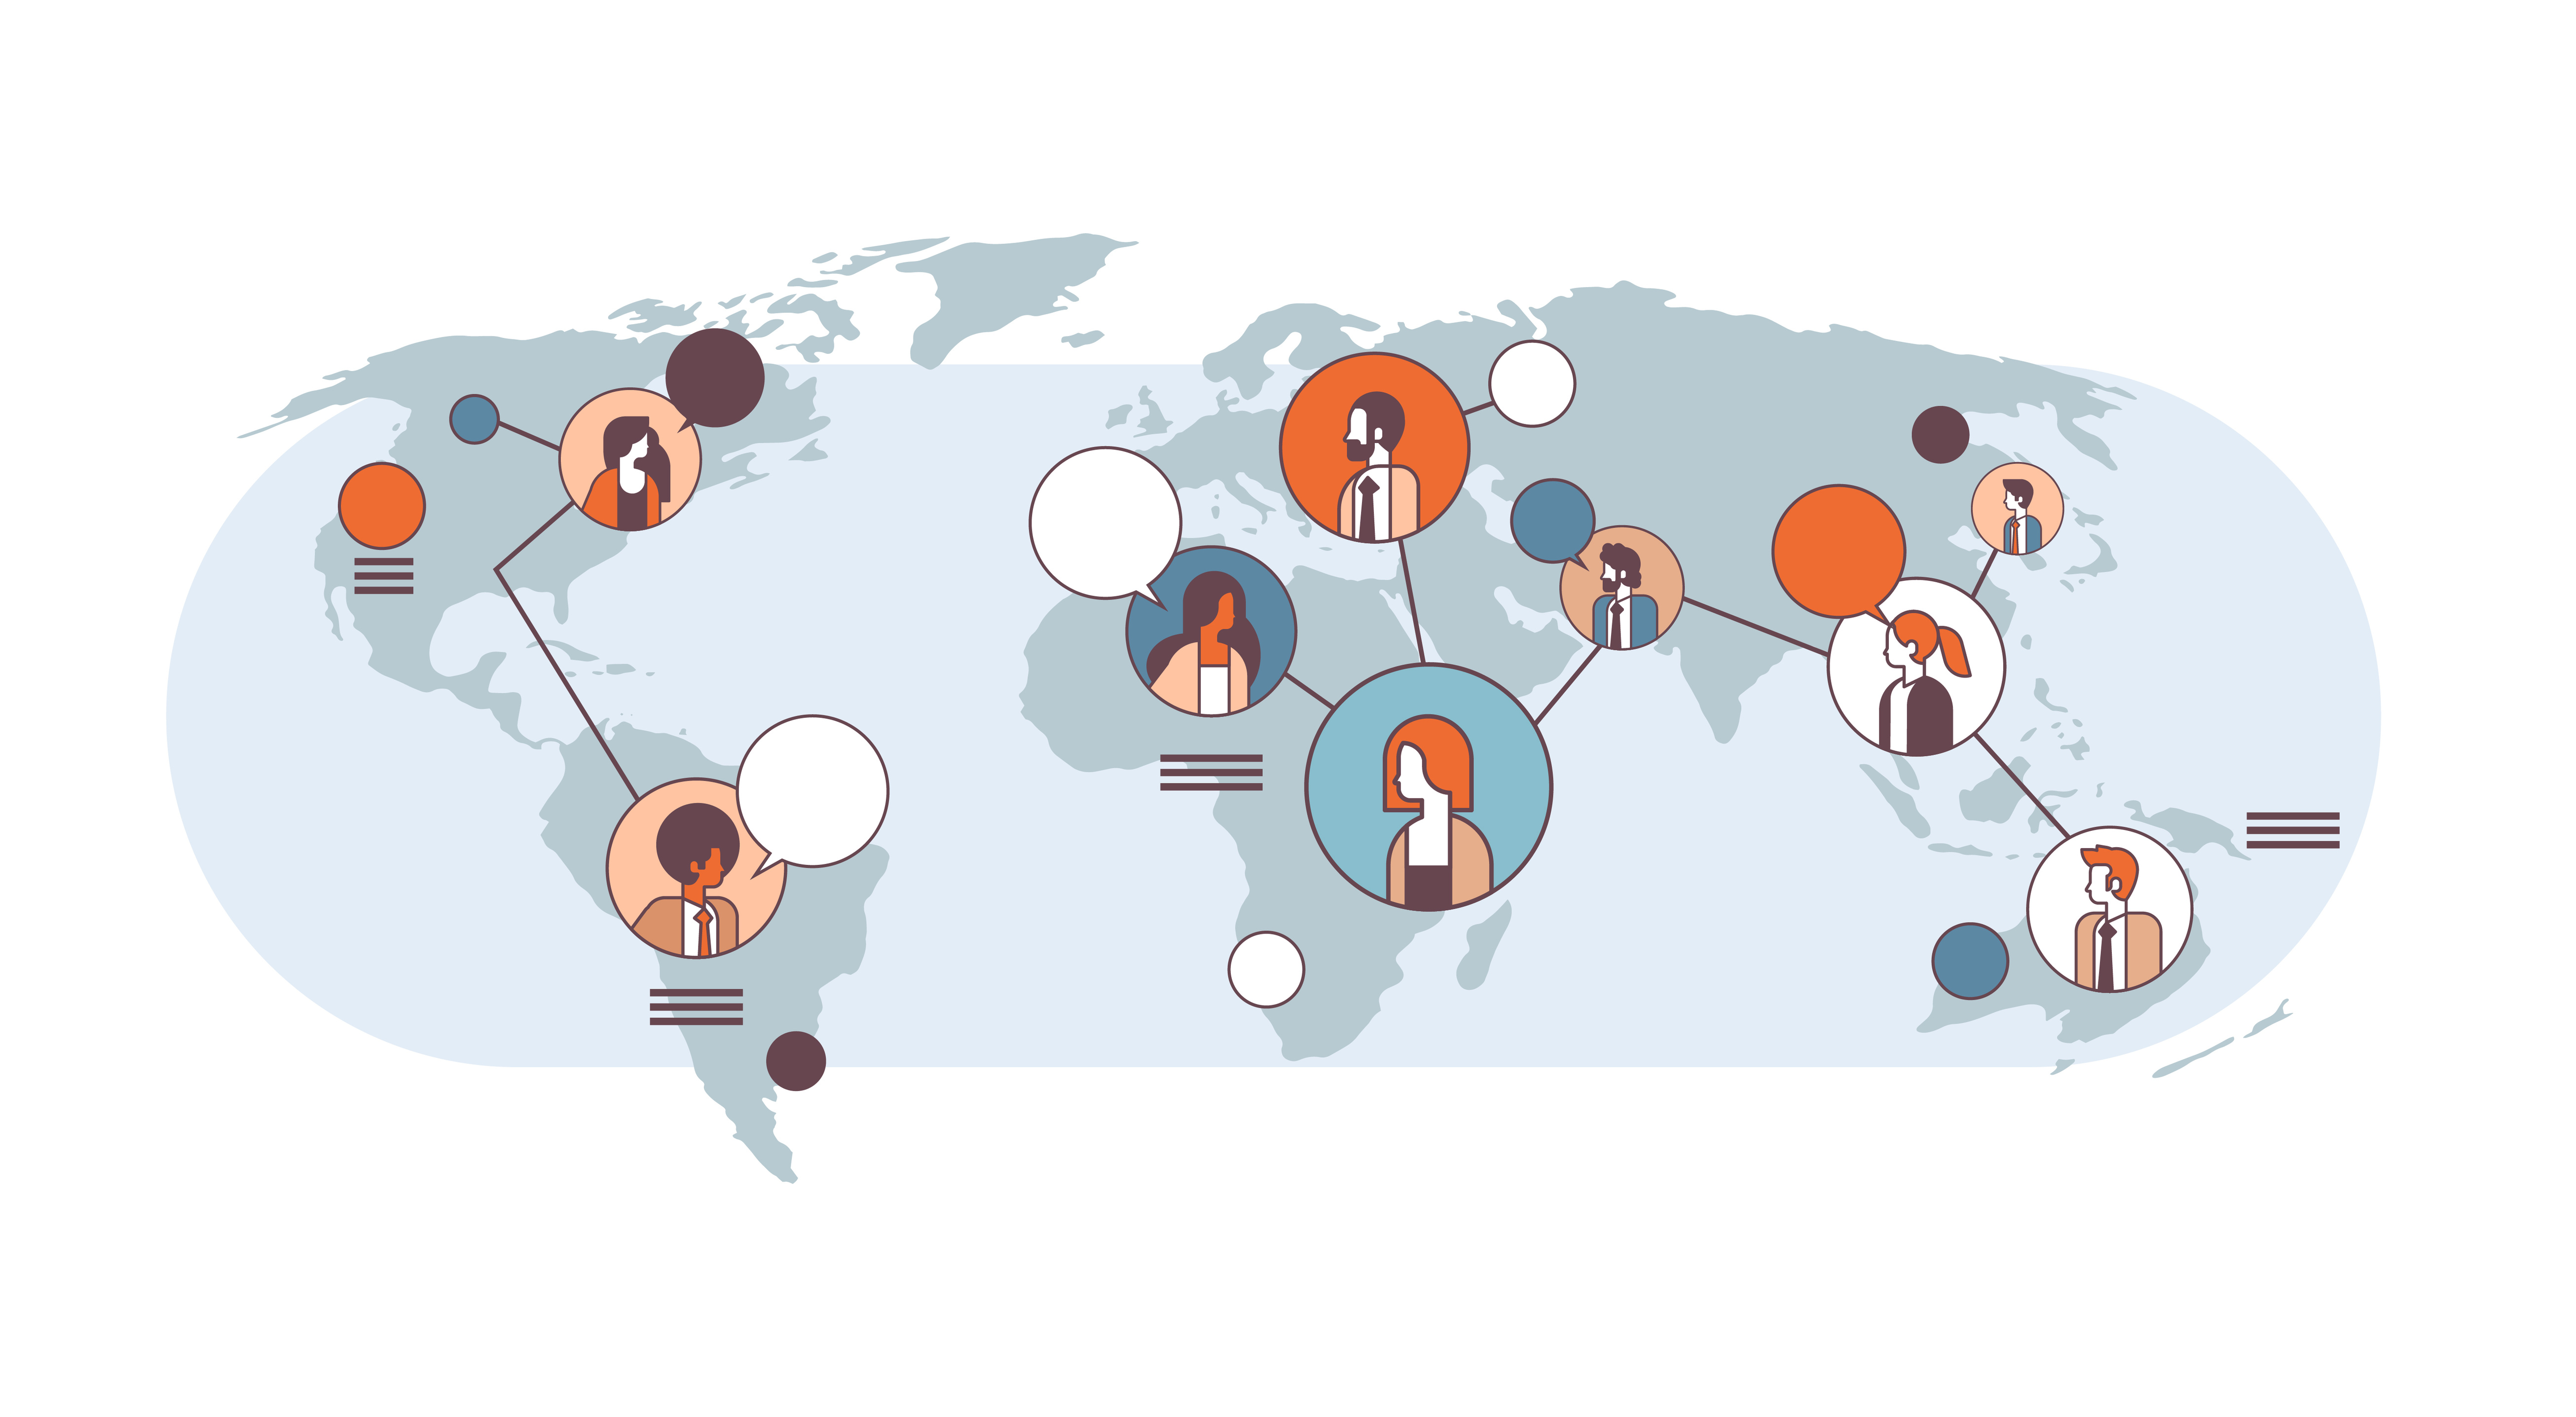 Geographically Categorized Personas